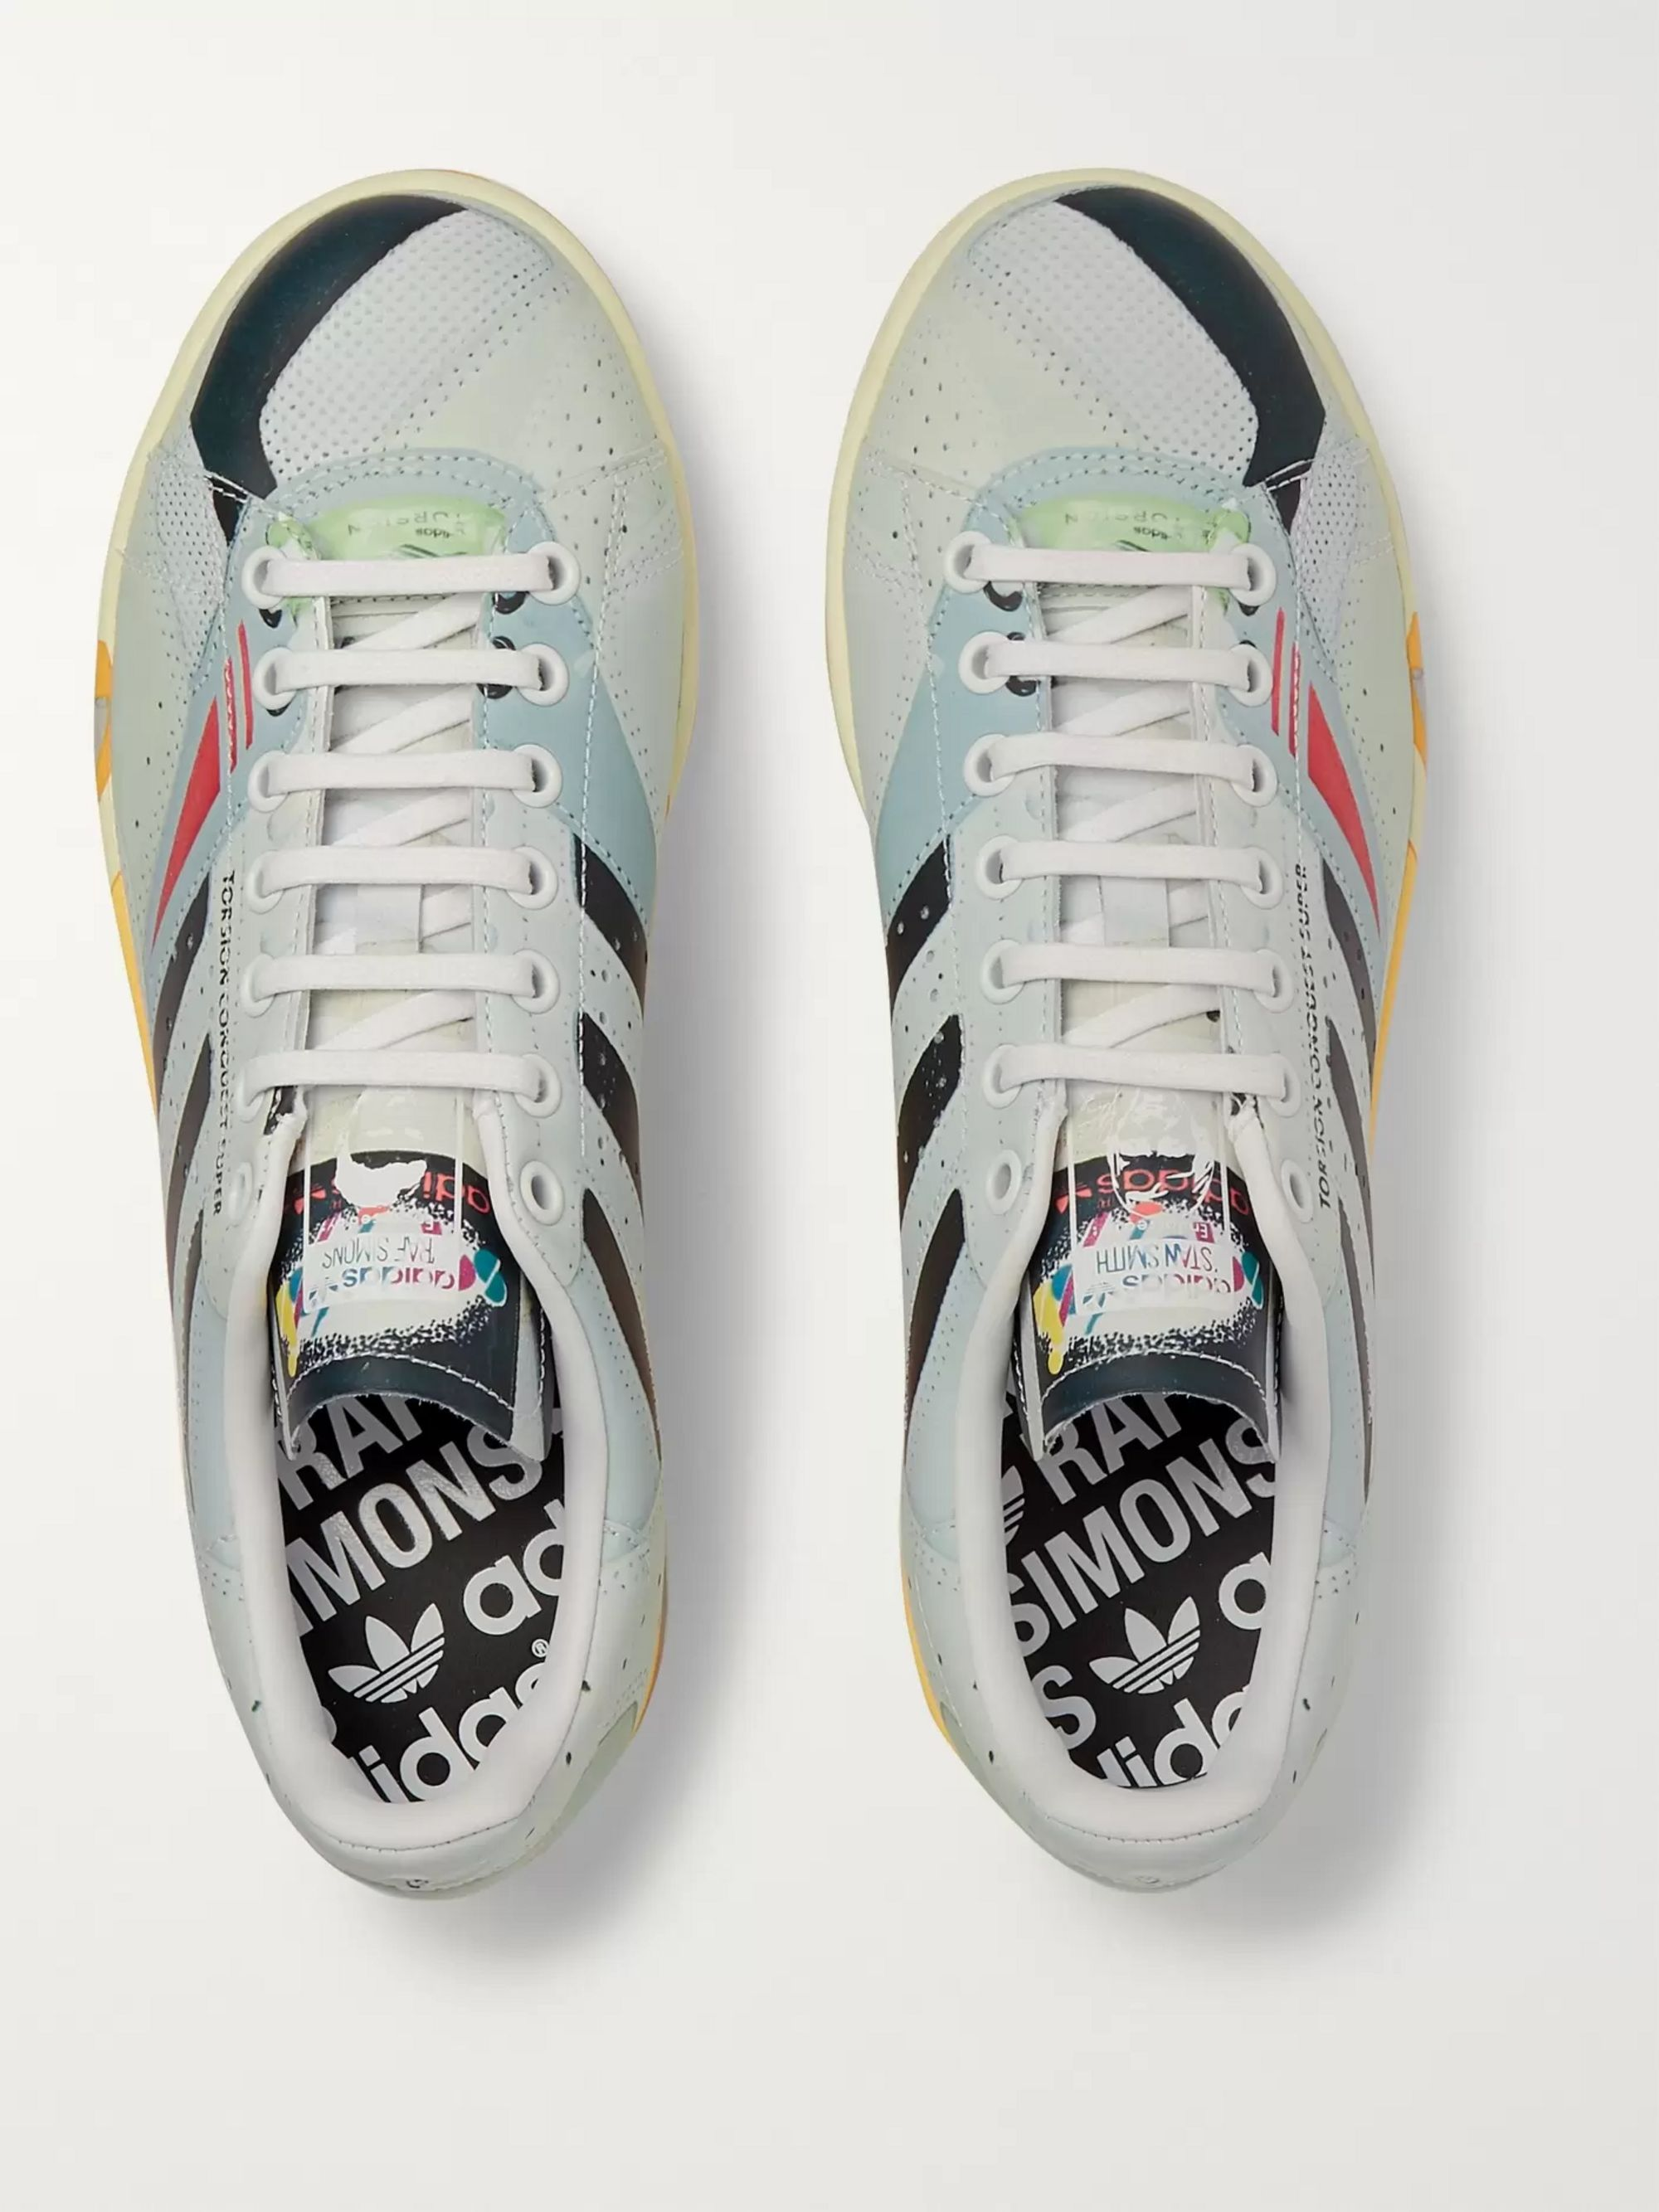 Raf Simons + adidas Originals Torsion Stan Smith Printed Leather Sneakers